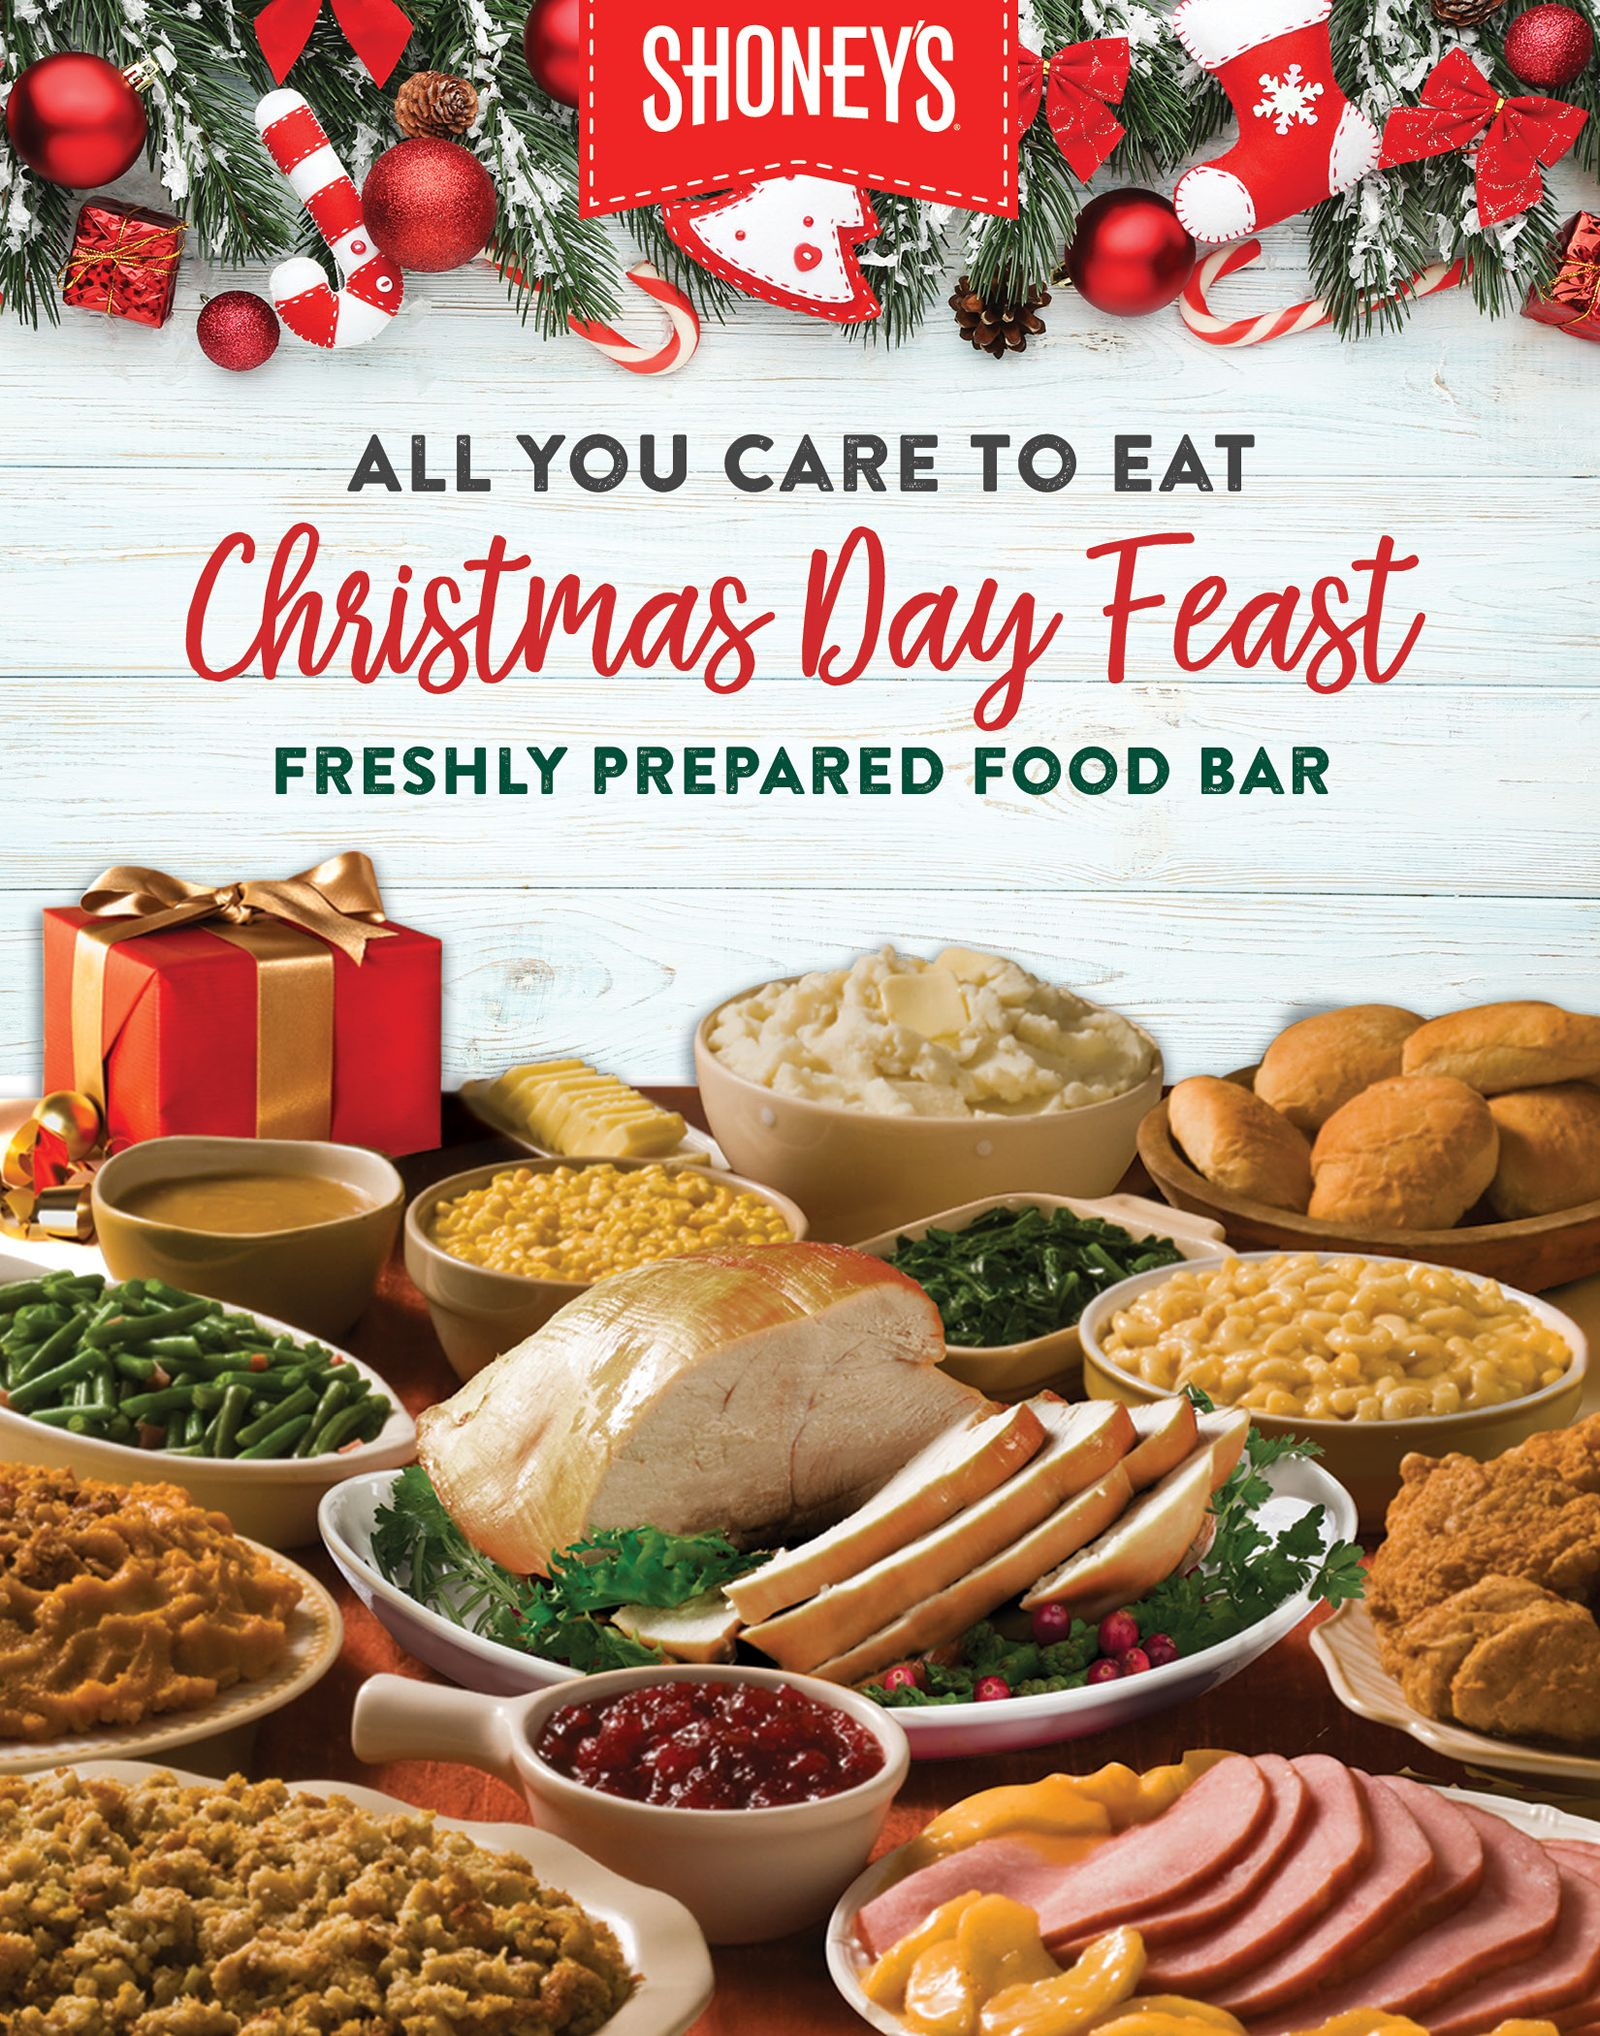 Restaurants Open Christmas Day In 2020 In Columbia Sc Shoney's Doors Will be Open for a Christmas Day Feast on Wednesday